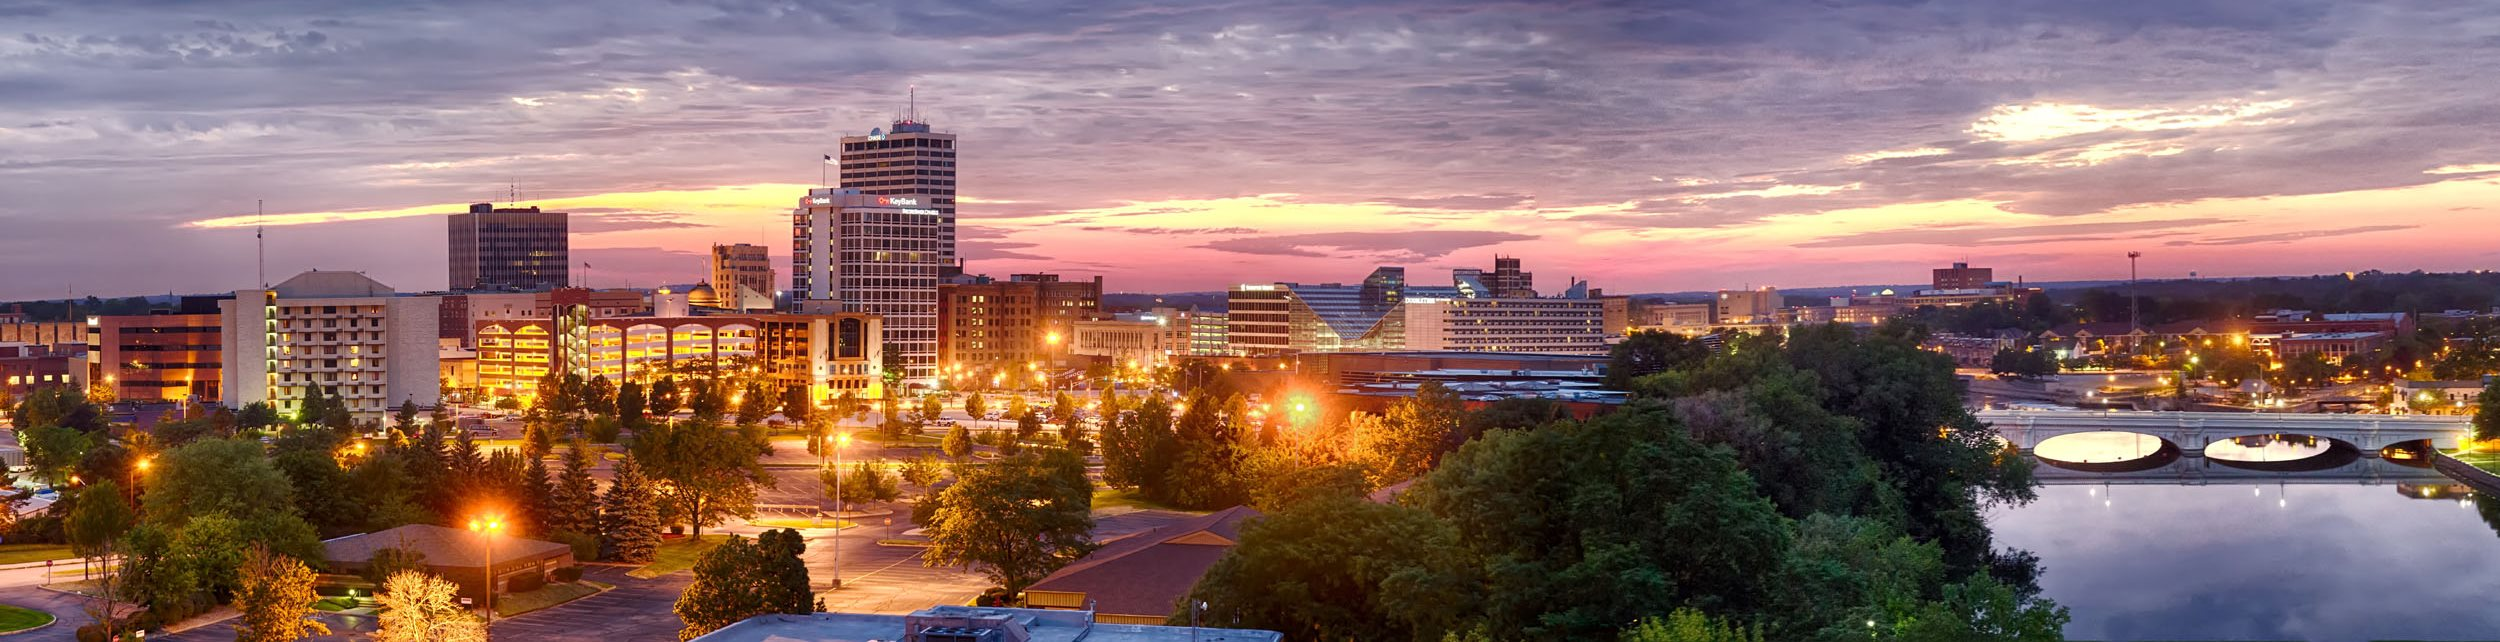 Downtown South Bend Skyline